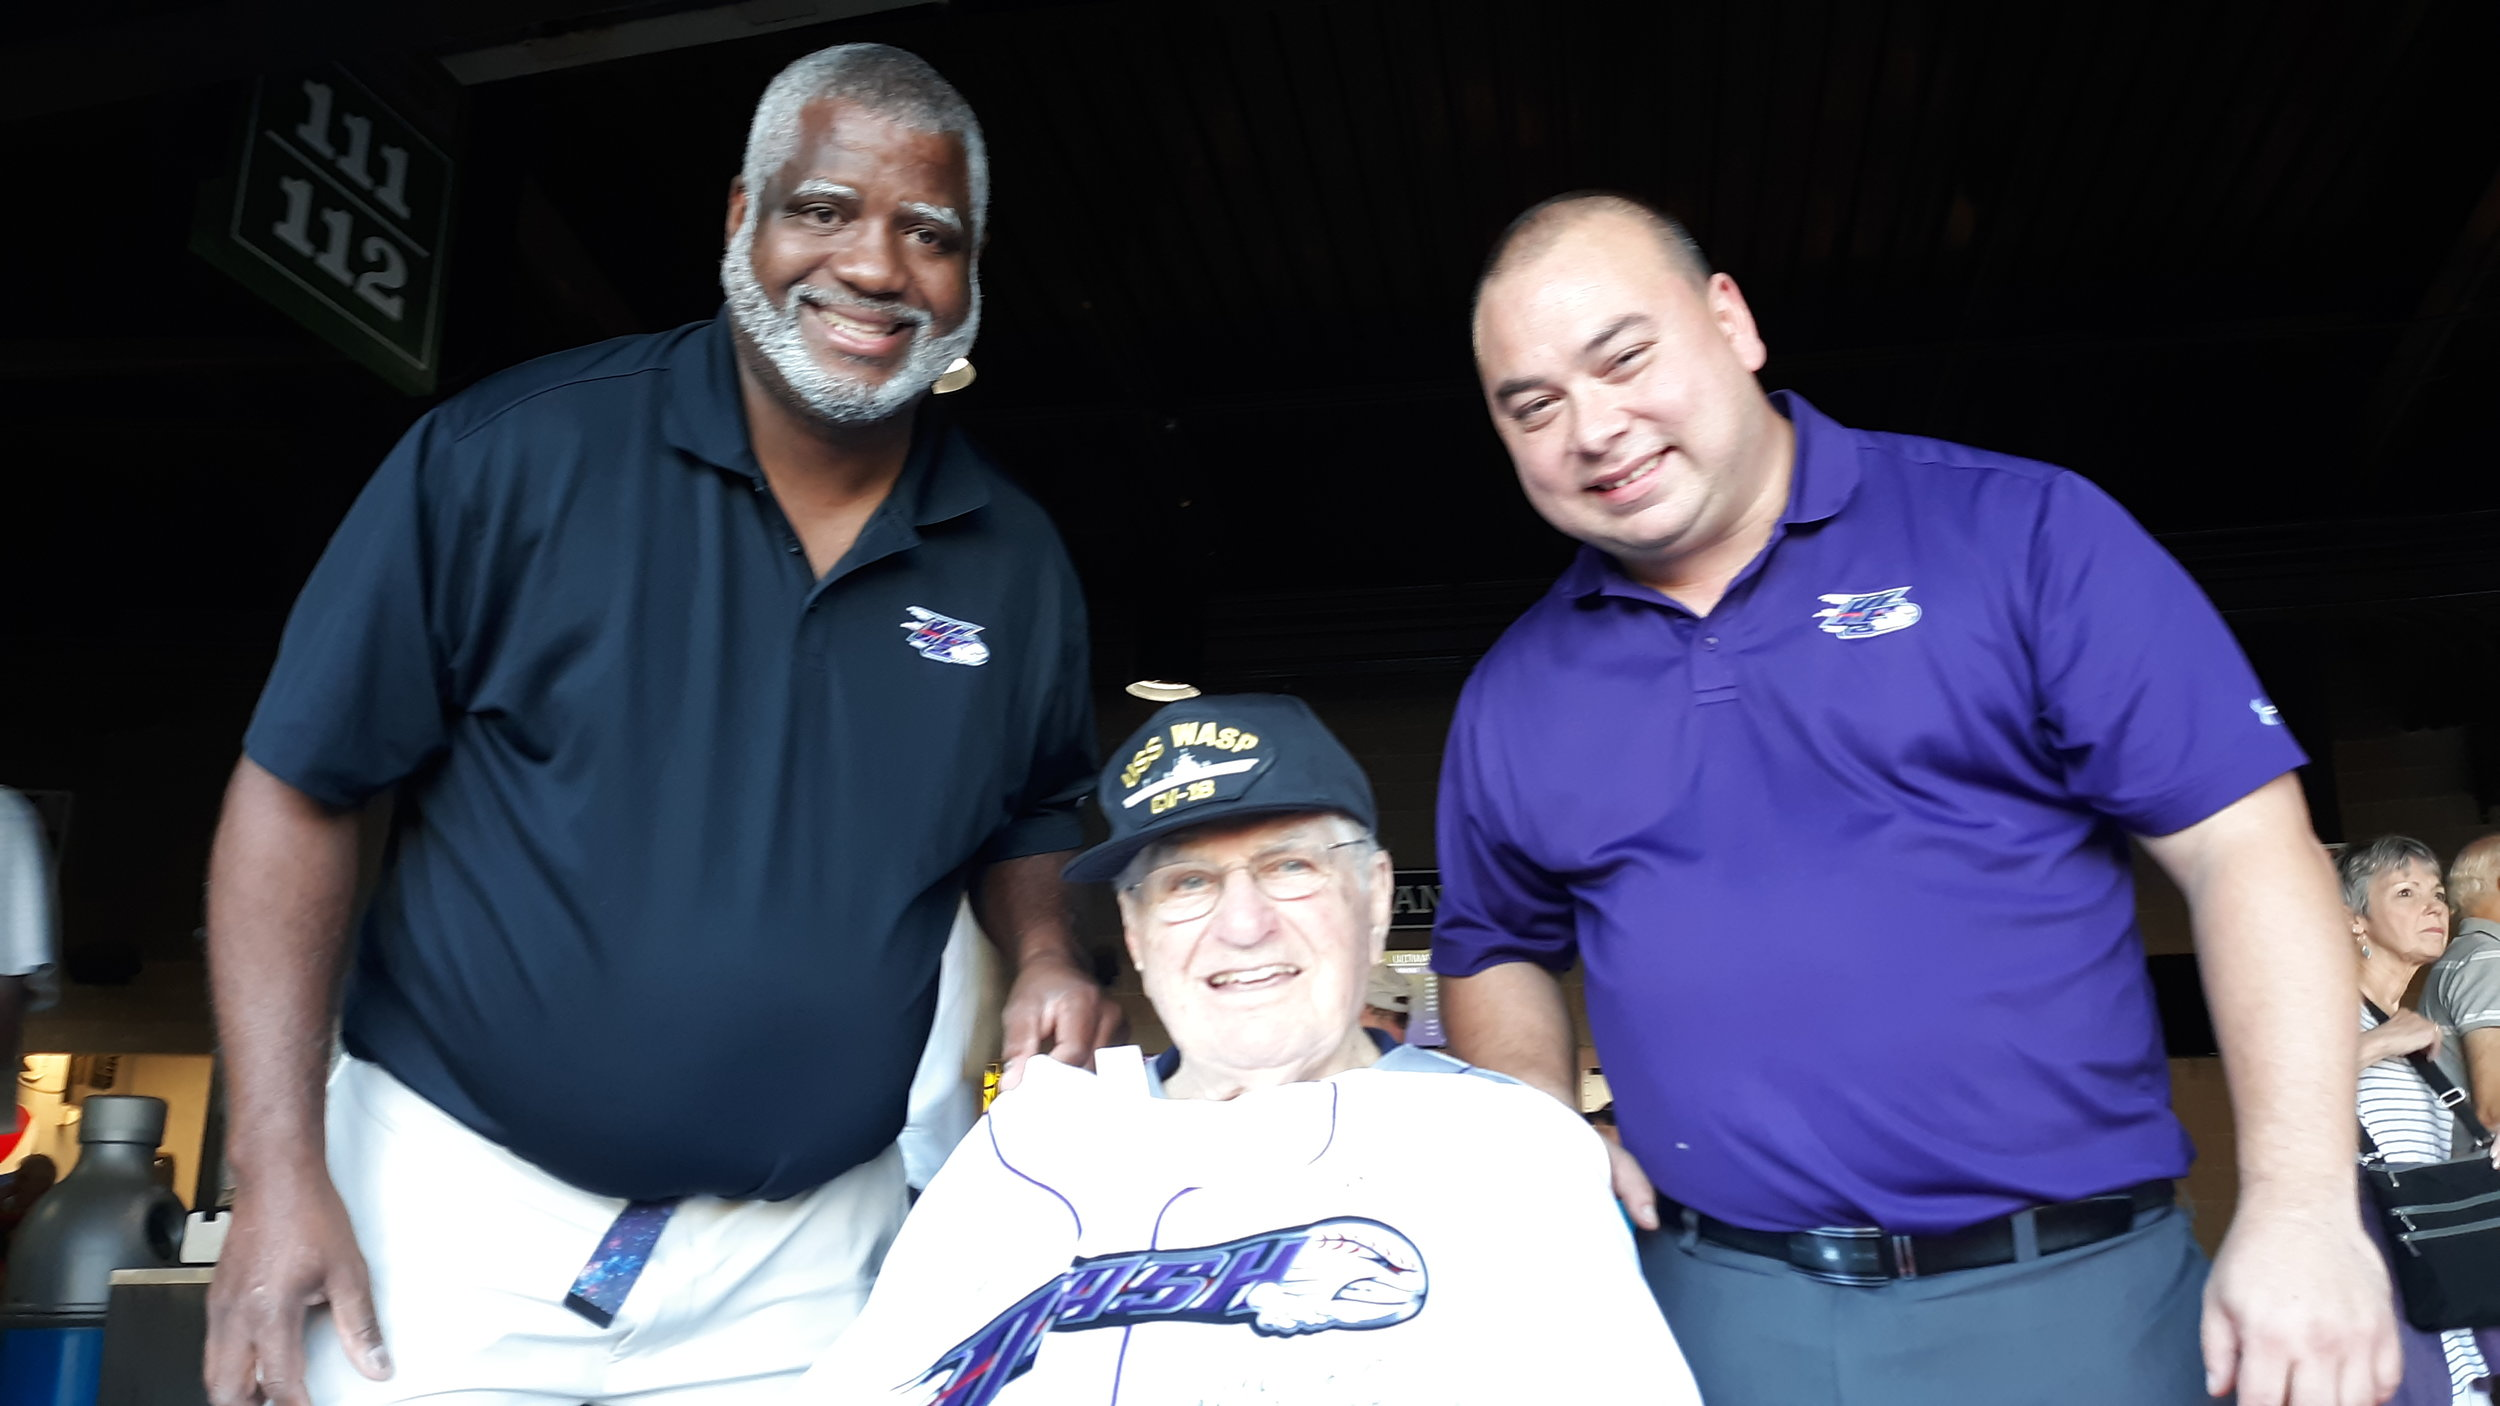 Dad's 70 game streak is recognized with a team jersey, presented by Clubhouse Manager Marlon Quattlebaum (left) and ballpark manager Kit Edwards (right). What doesn't show in the photo is that the jersey has been signed by all of the Winston-Salem Dash players.